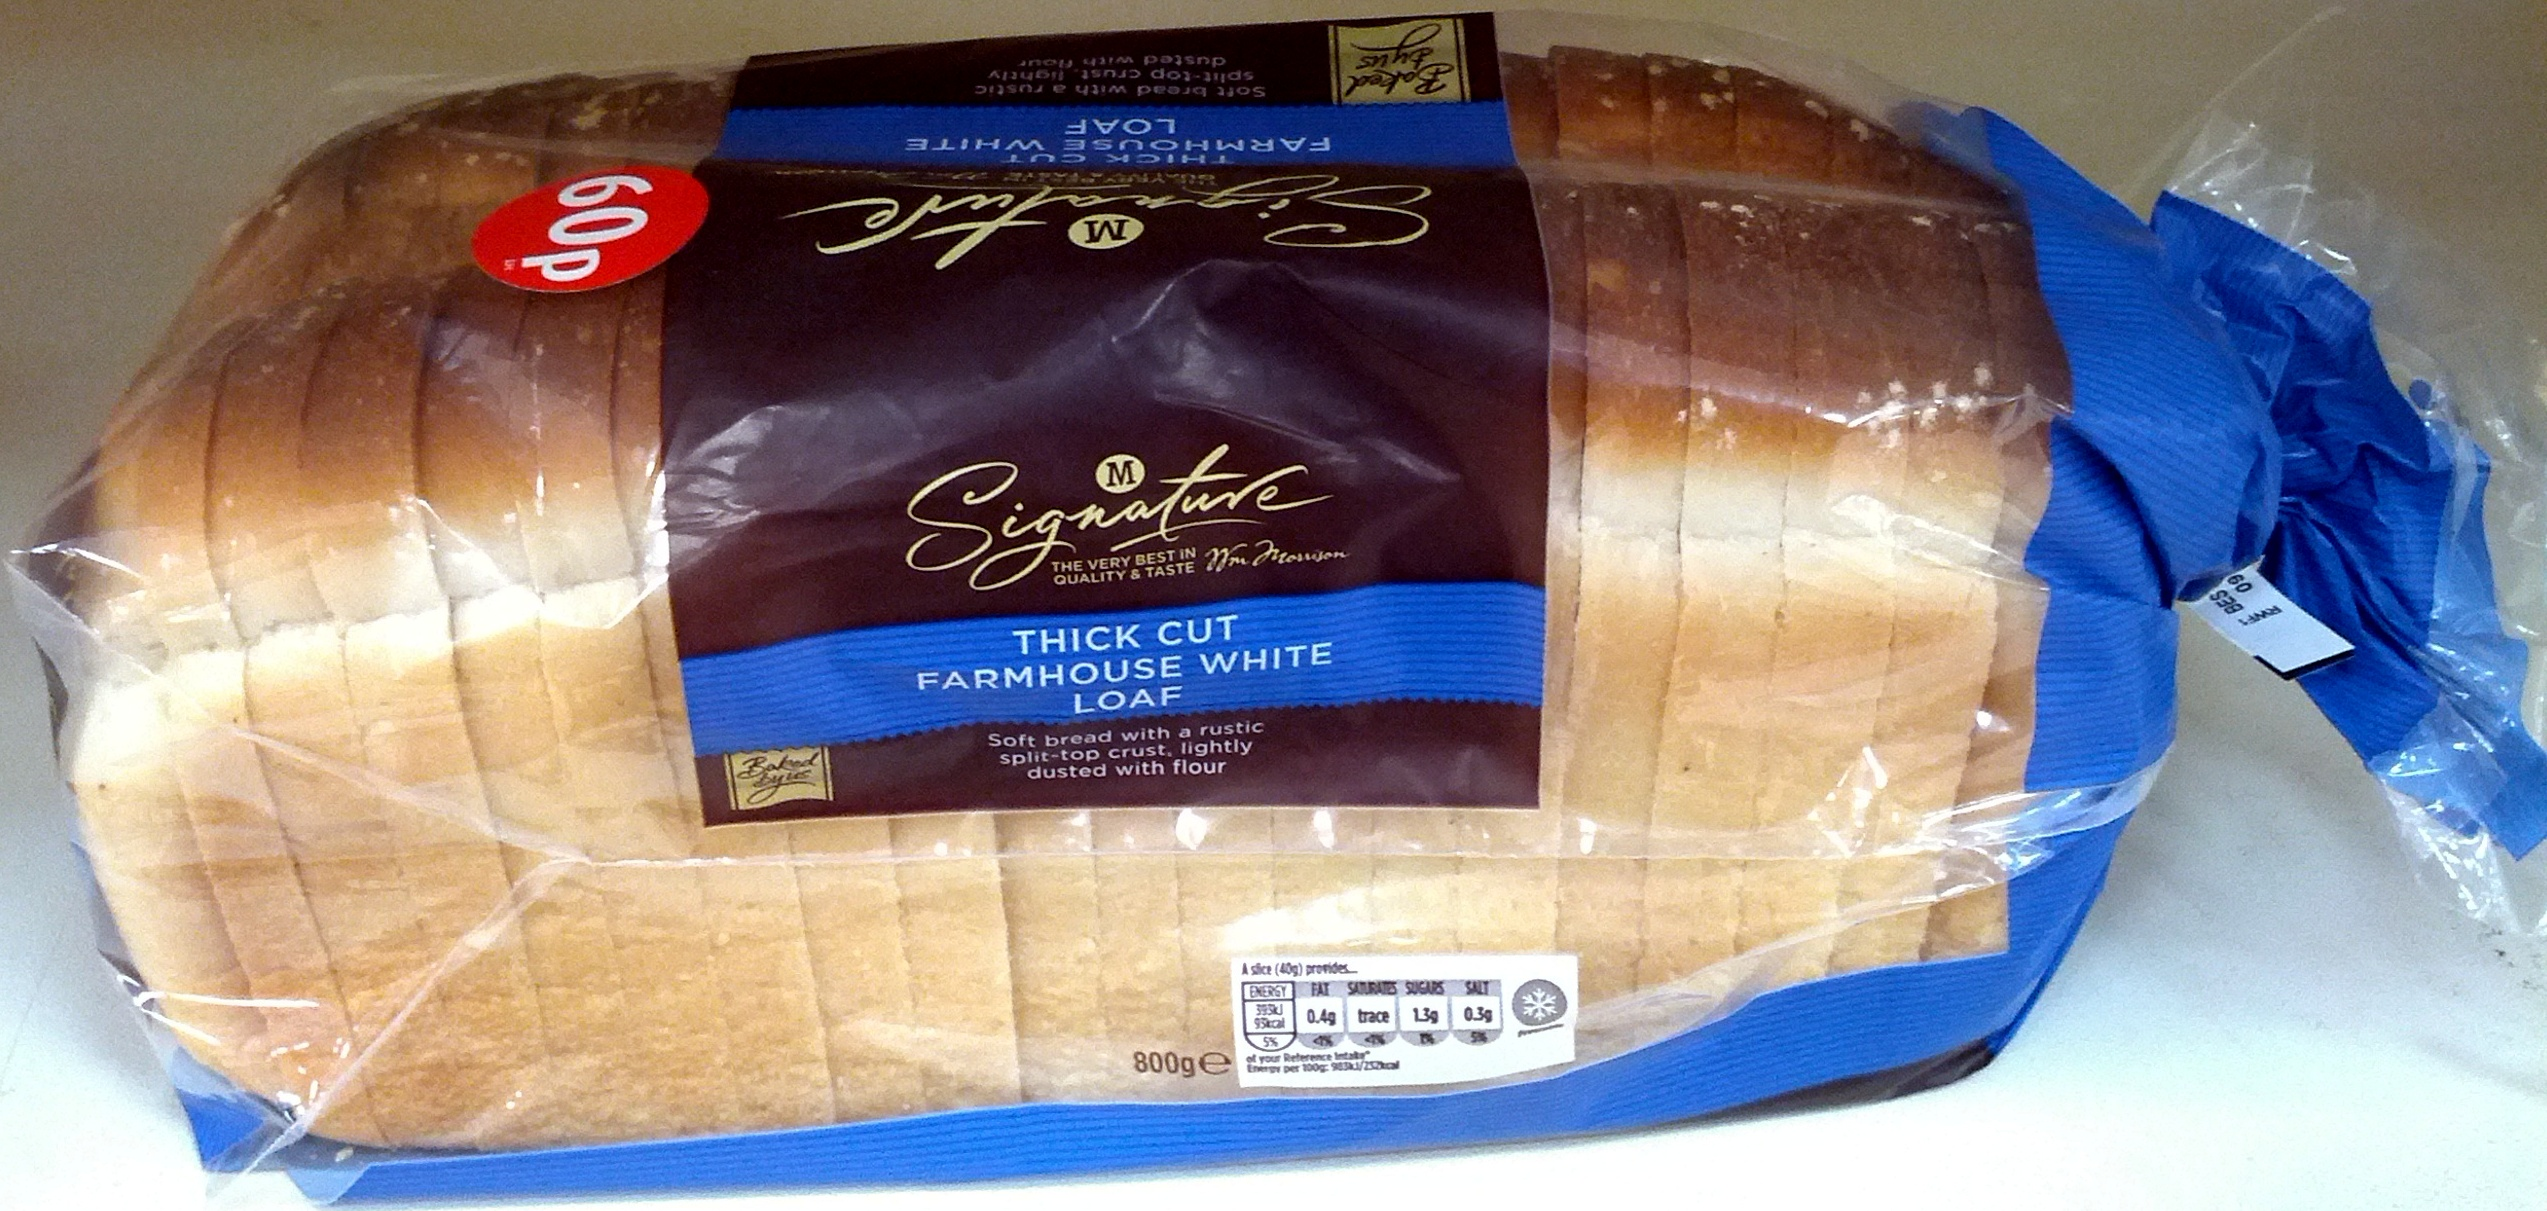 Thick Cut Farmhouse White Loaf - Product - en